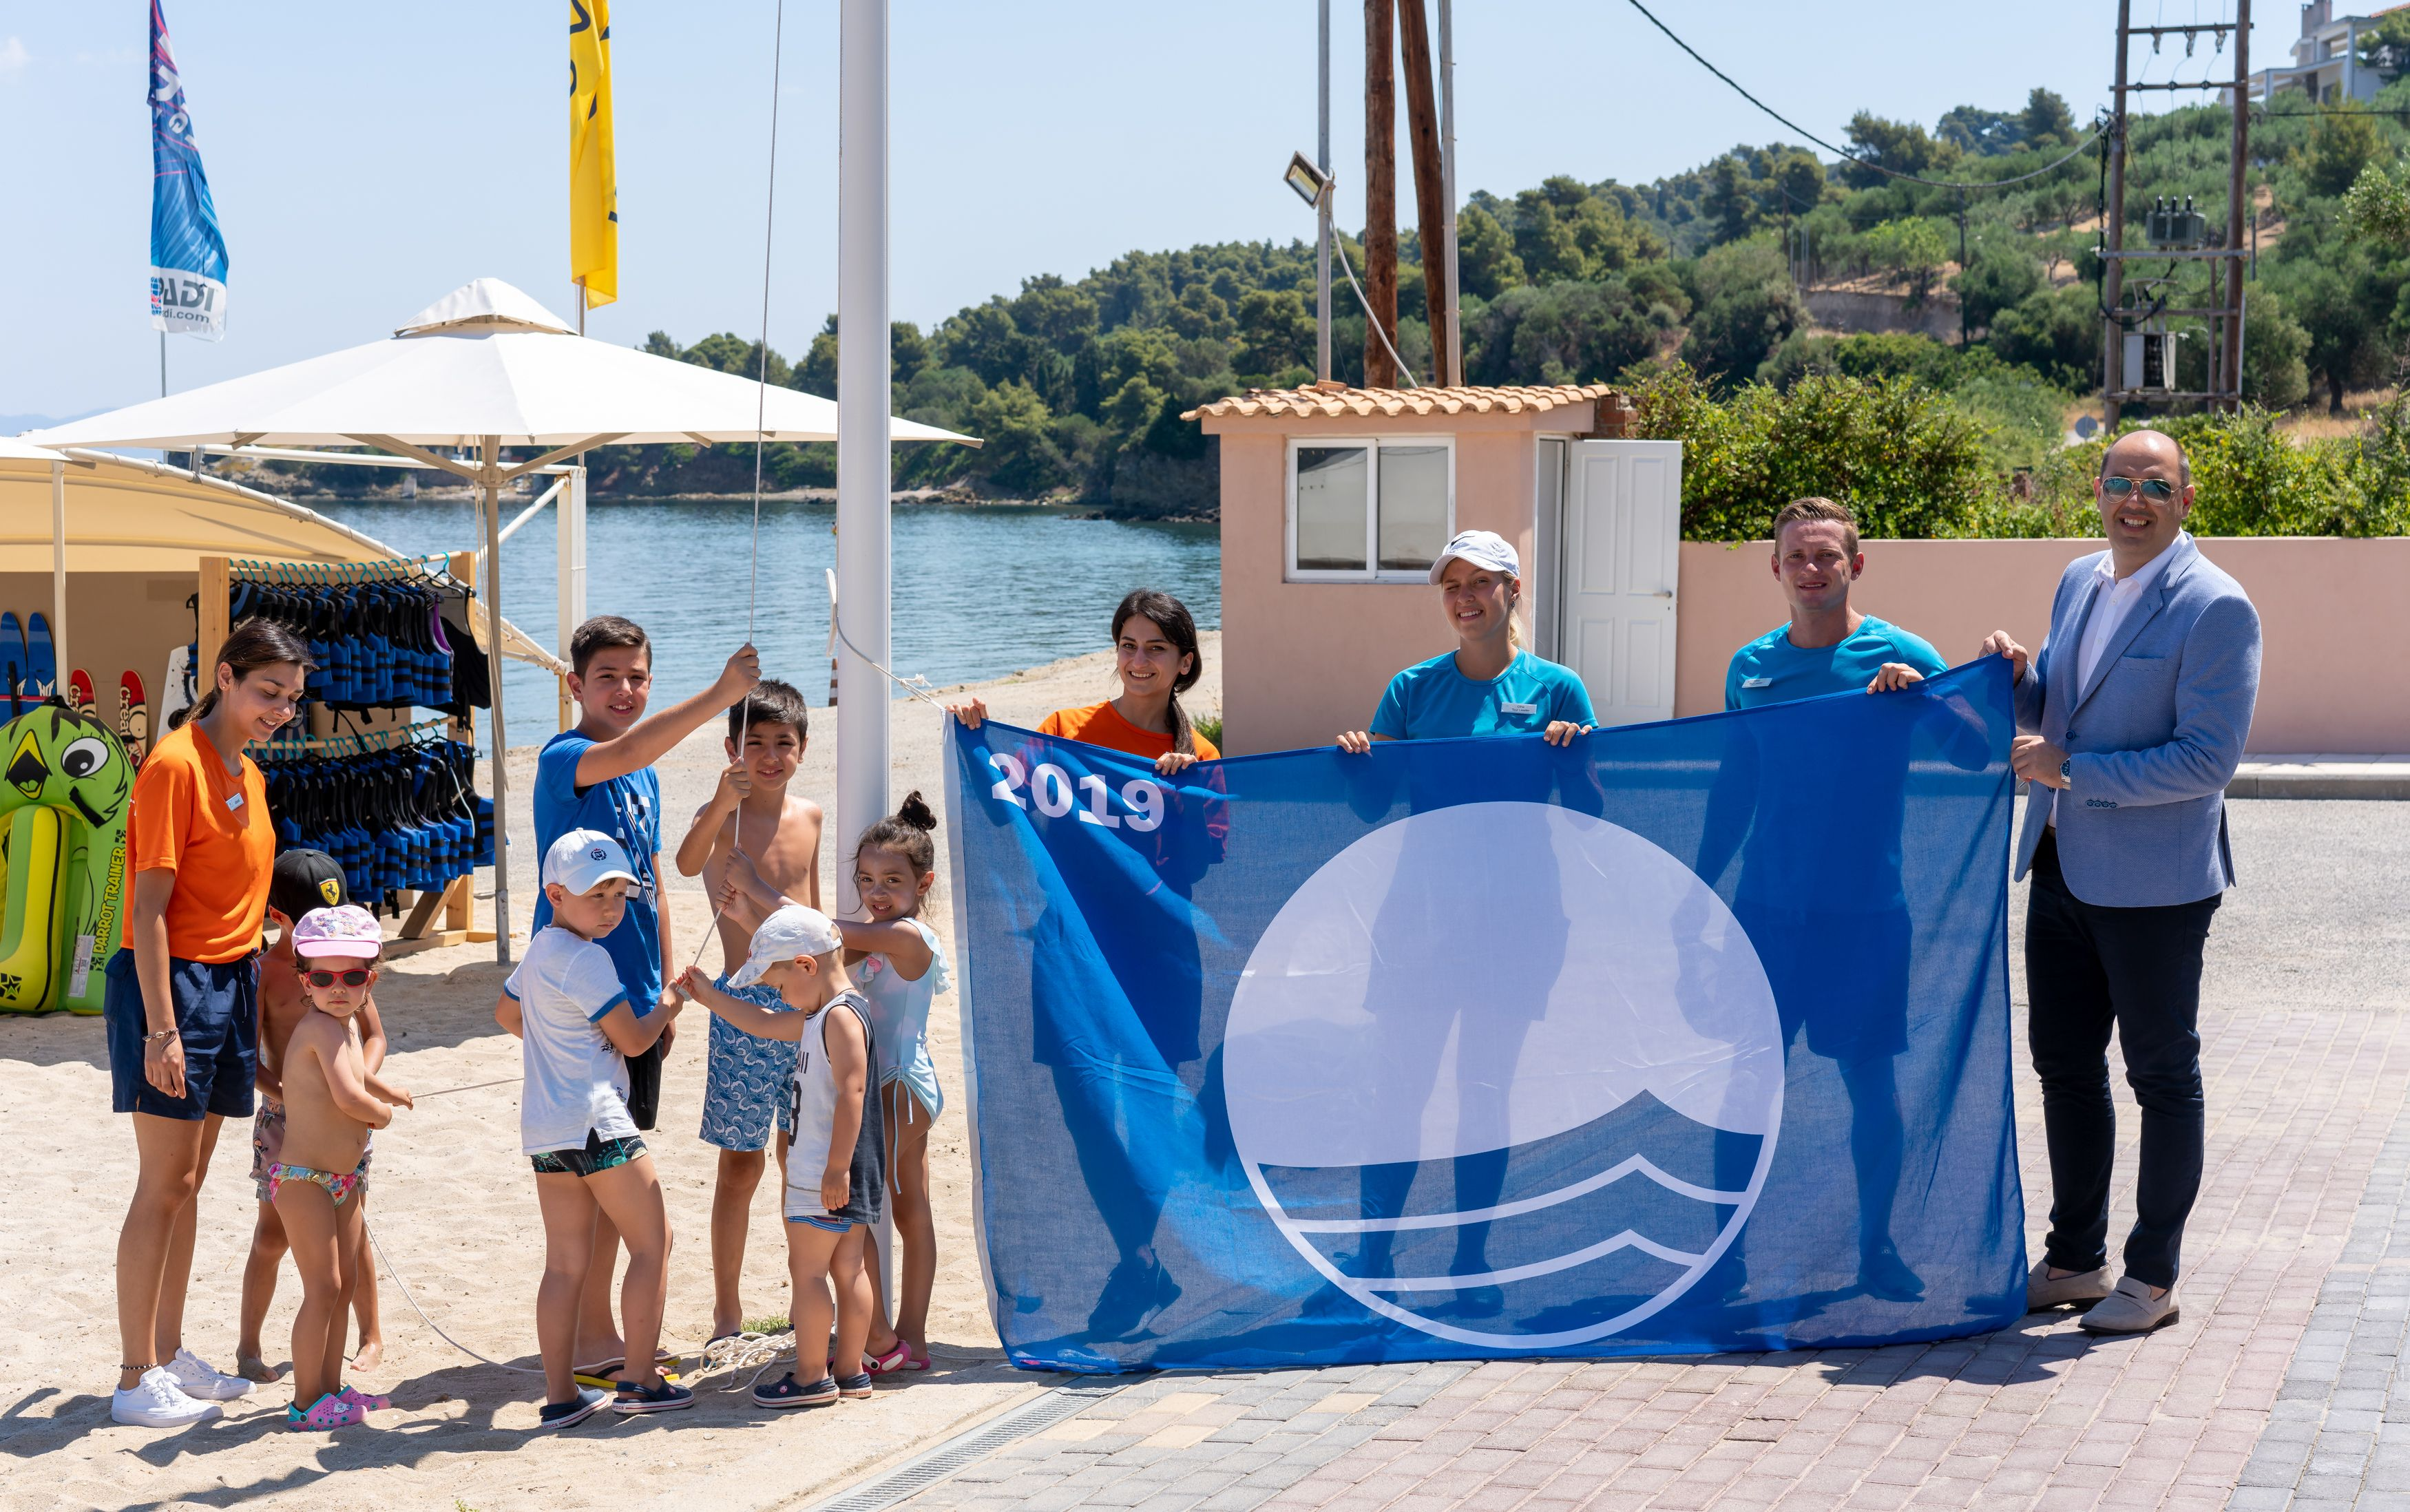 Miraggio Thermal Spa Resort awarded with the Blue Flag